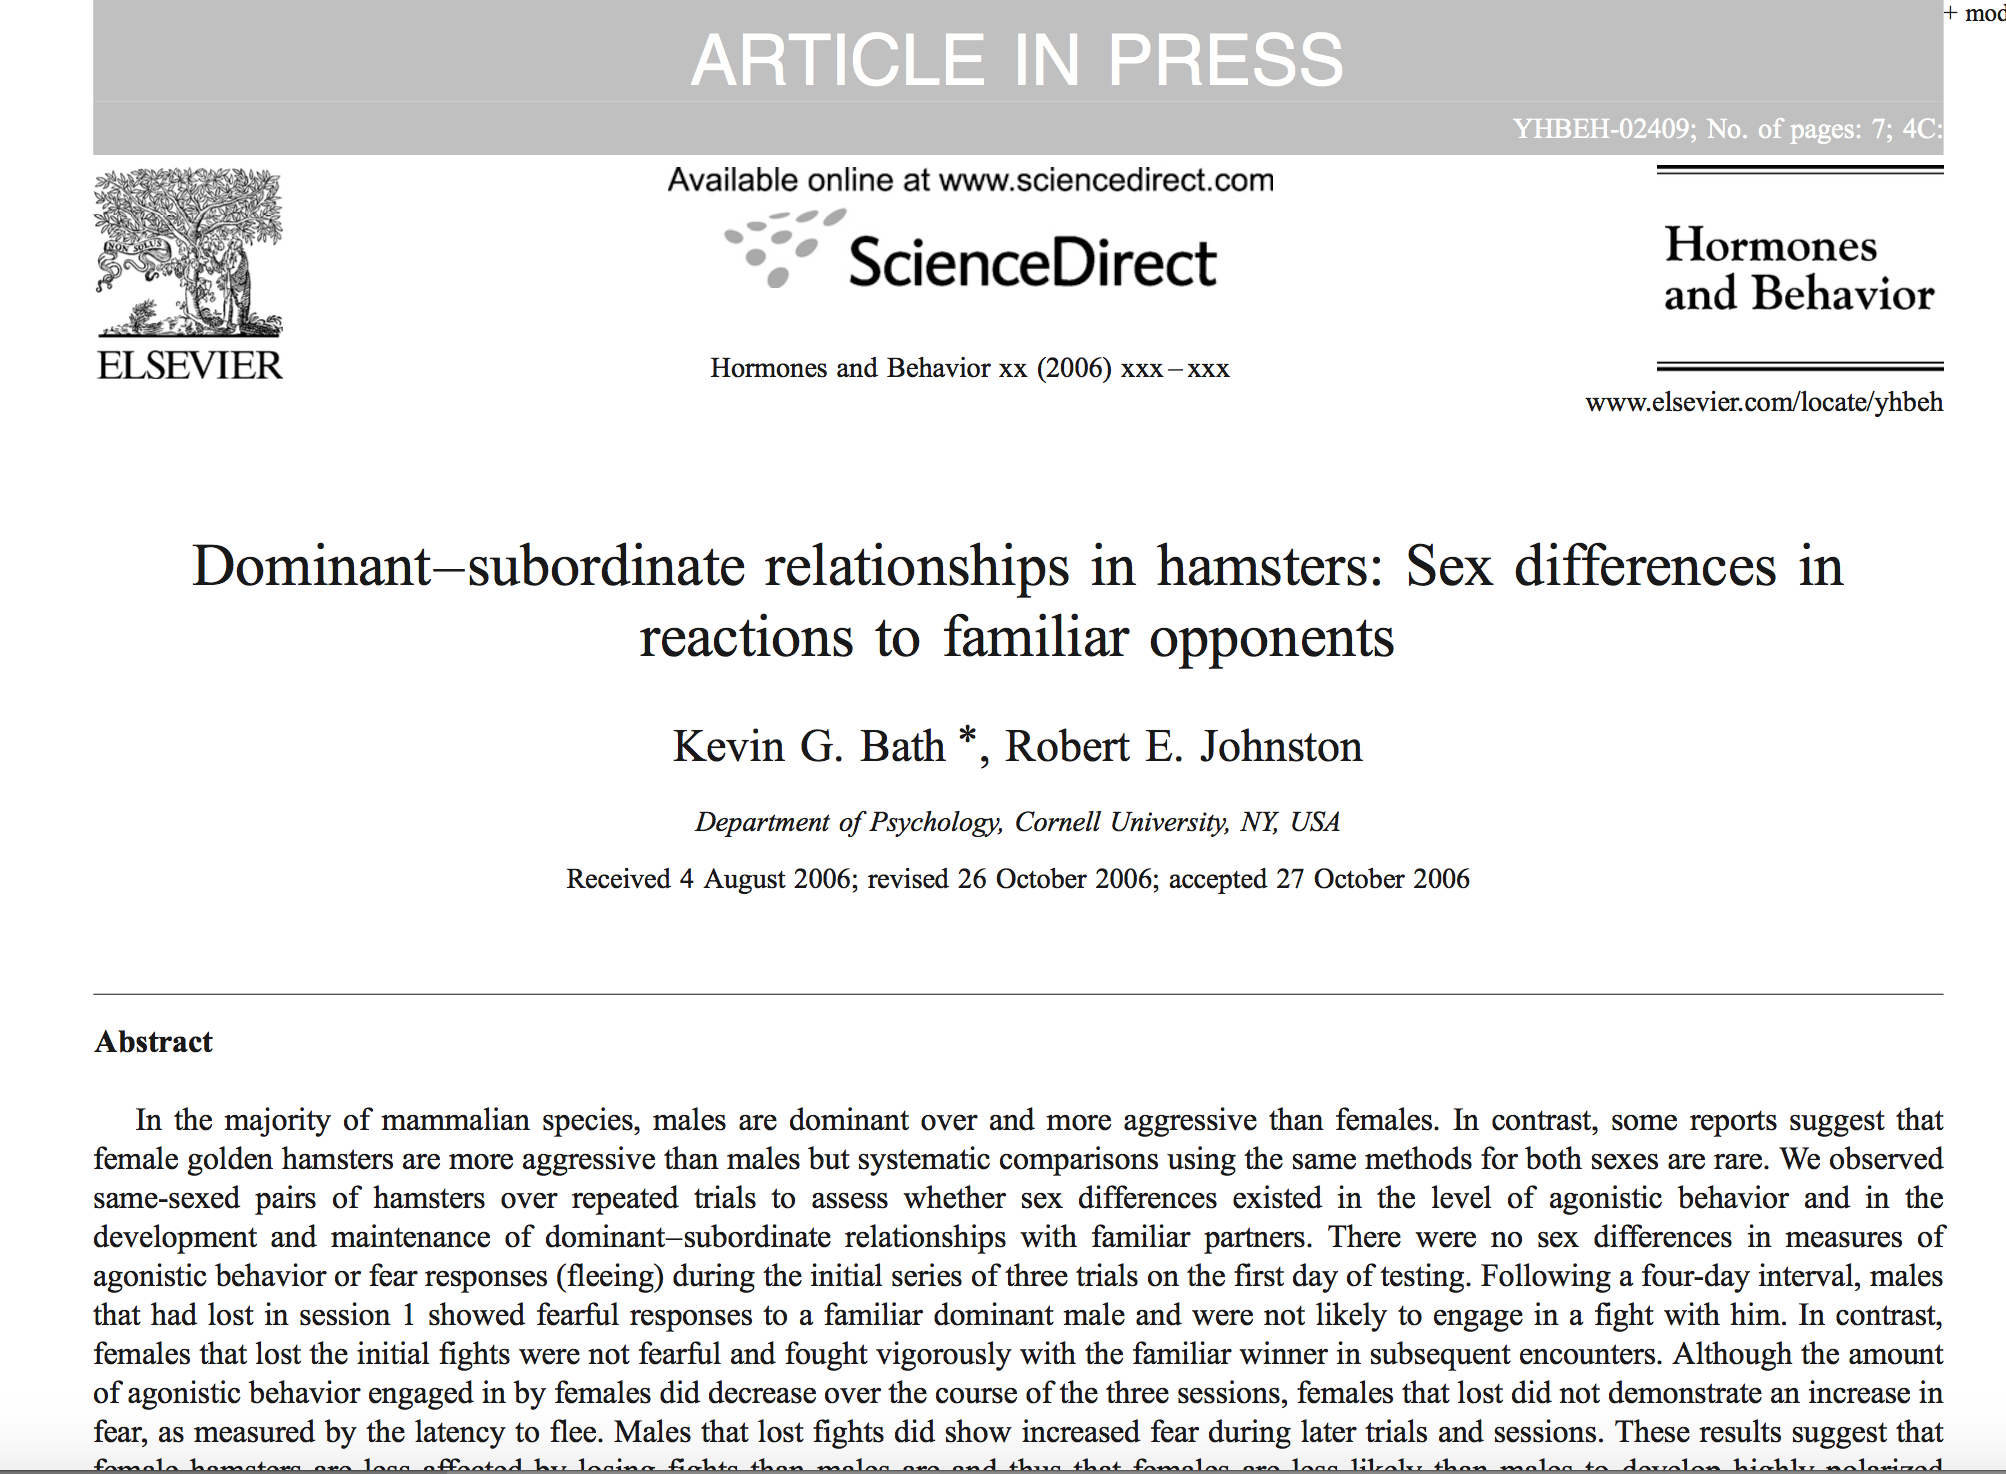 Bath & Johnston., 2007.     Hormones & Behavior.